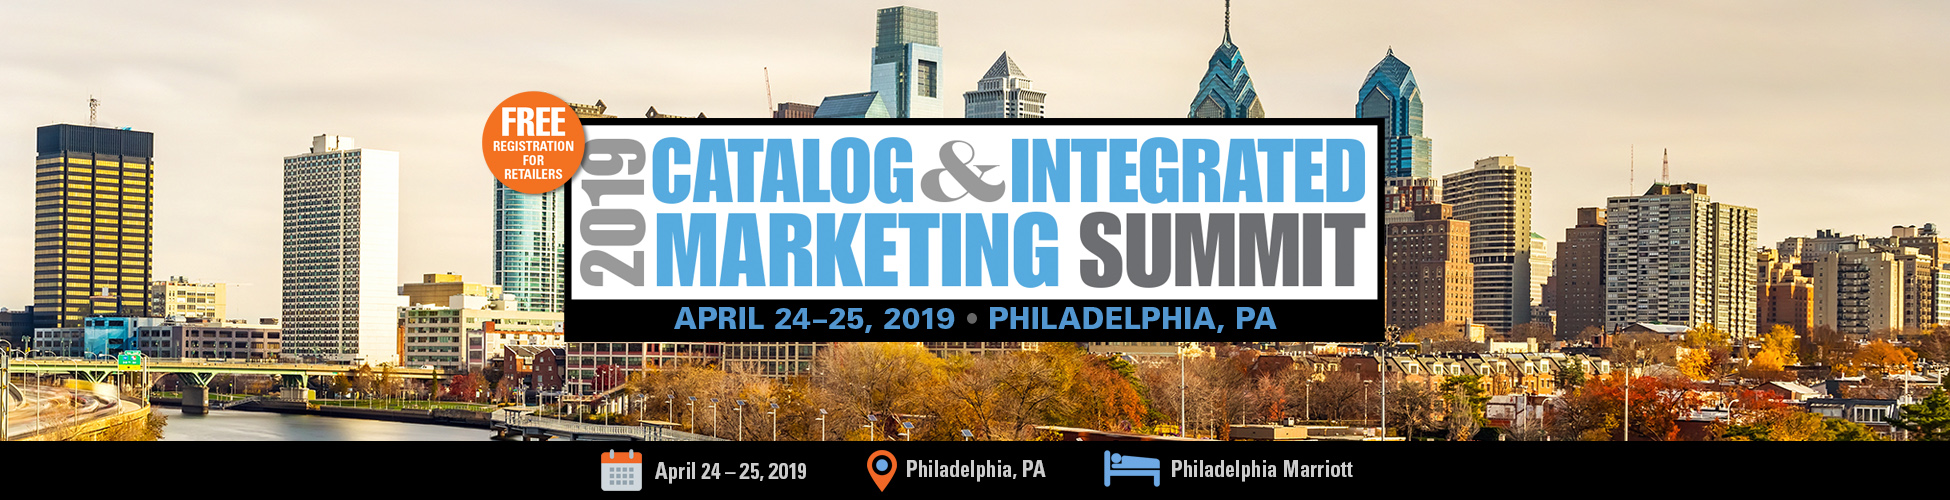 Cohereone Catalog and Integrated Marketing Summit